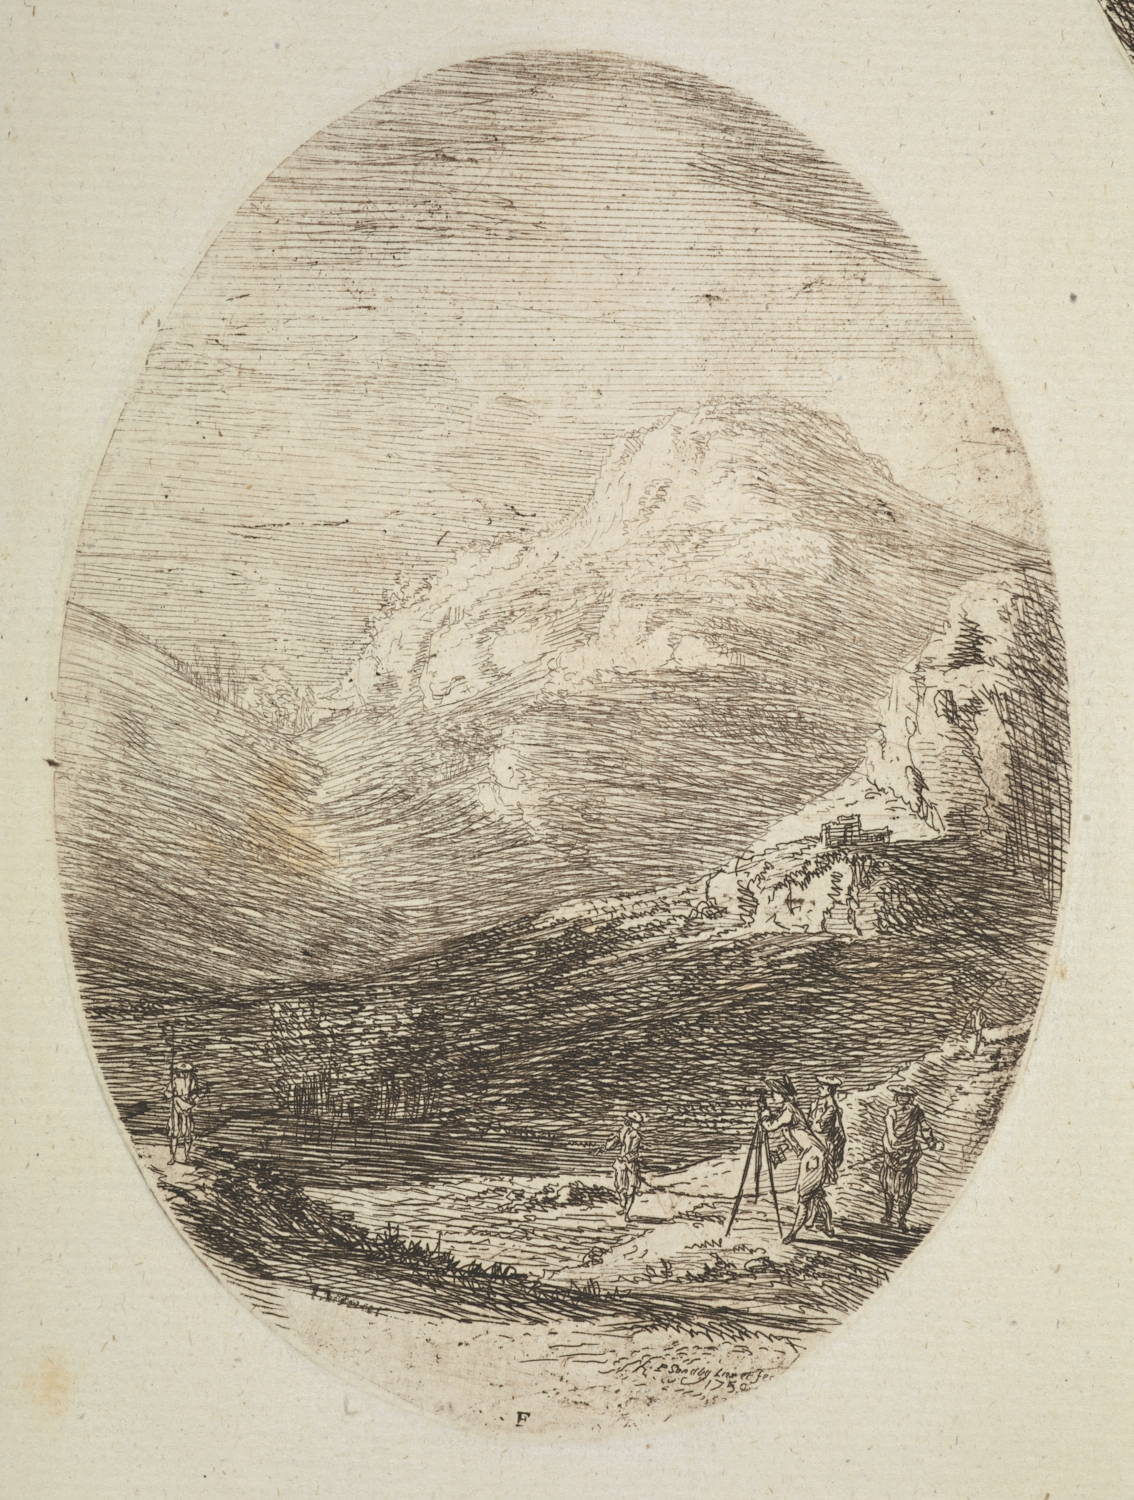 This print depicting a survey party in the Highlands and dated 1750 was published in 1765 by Ryland and Bryer as part of a collection of 100 etchings by Sandby